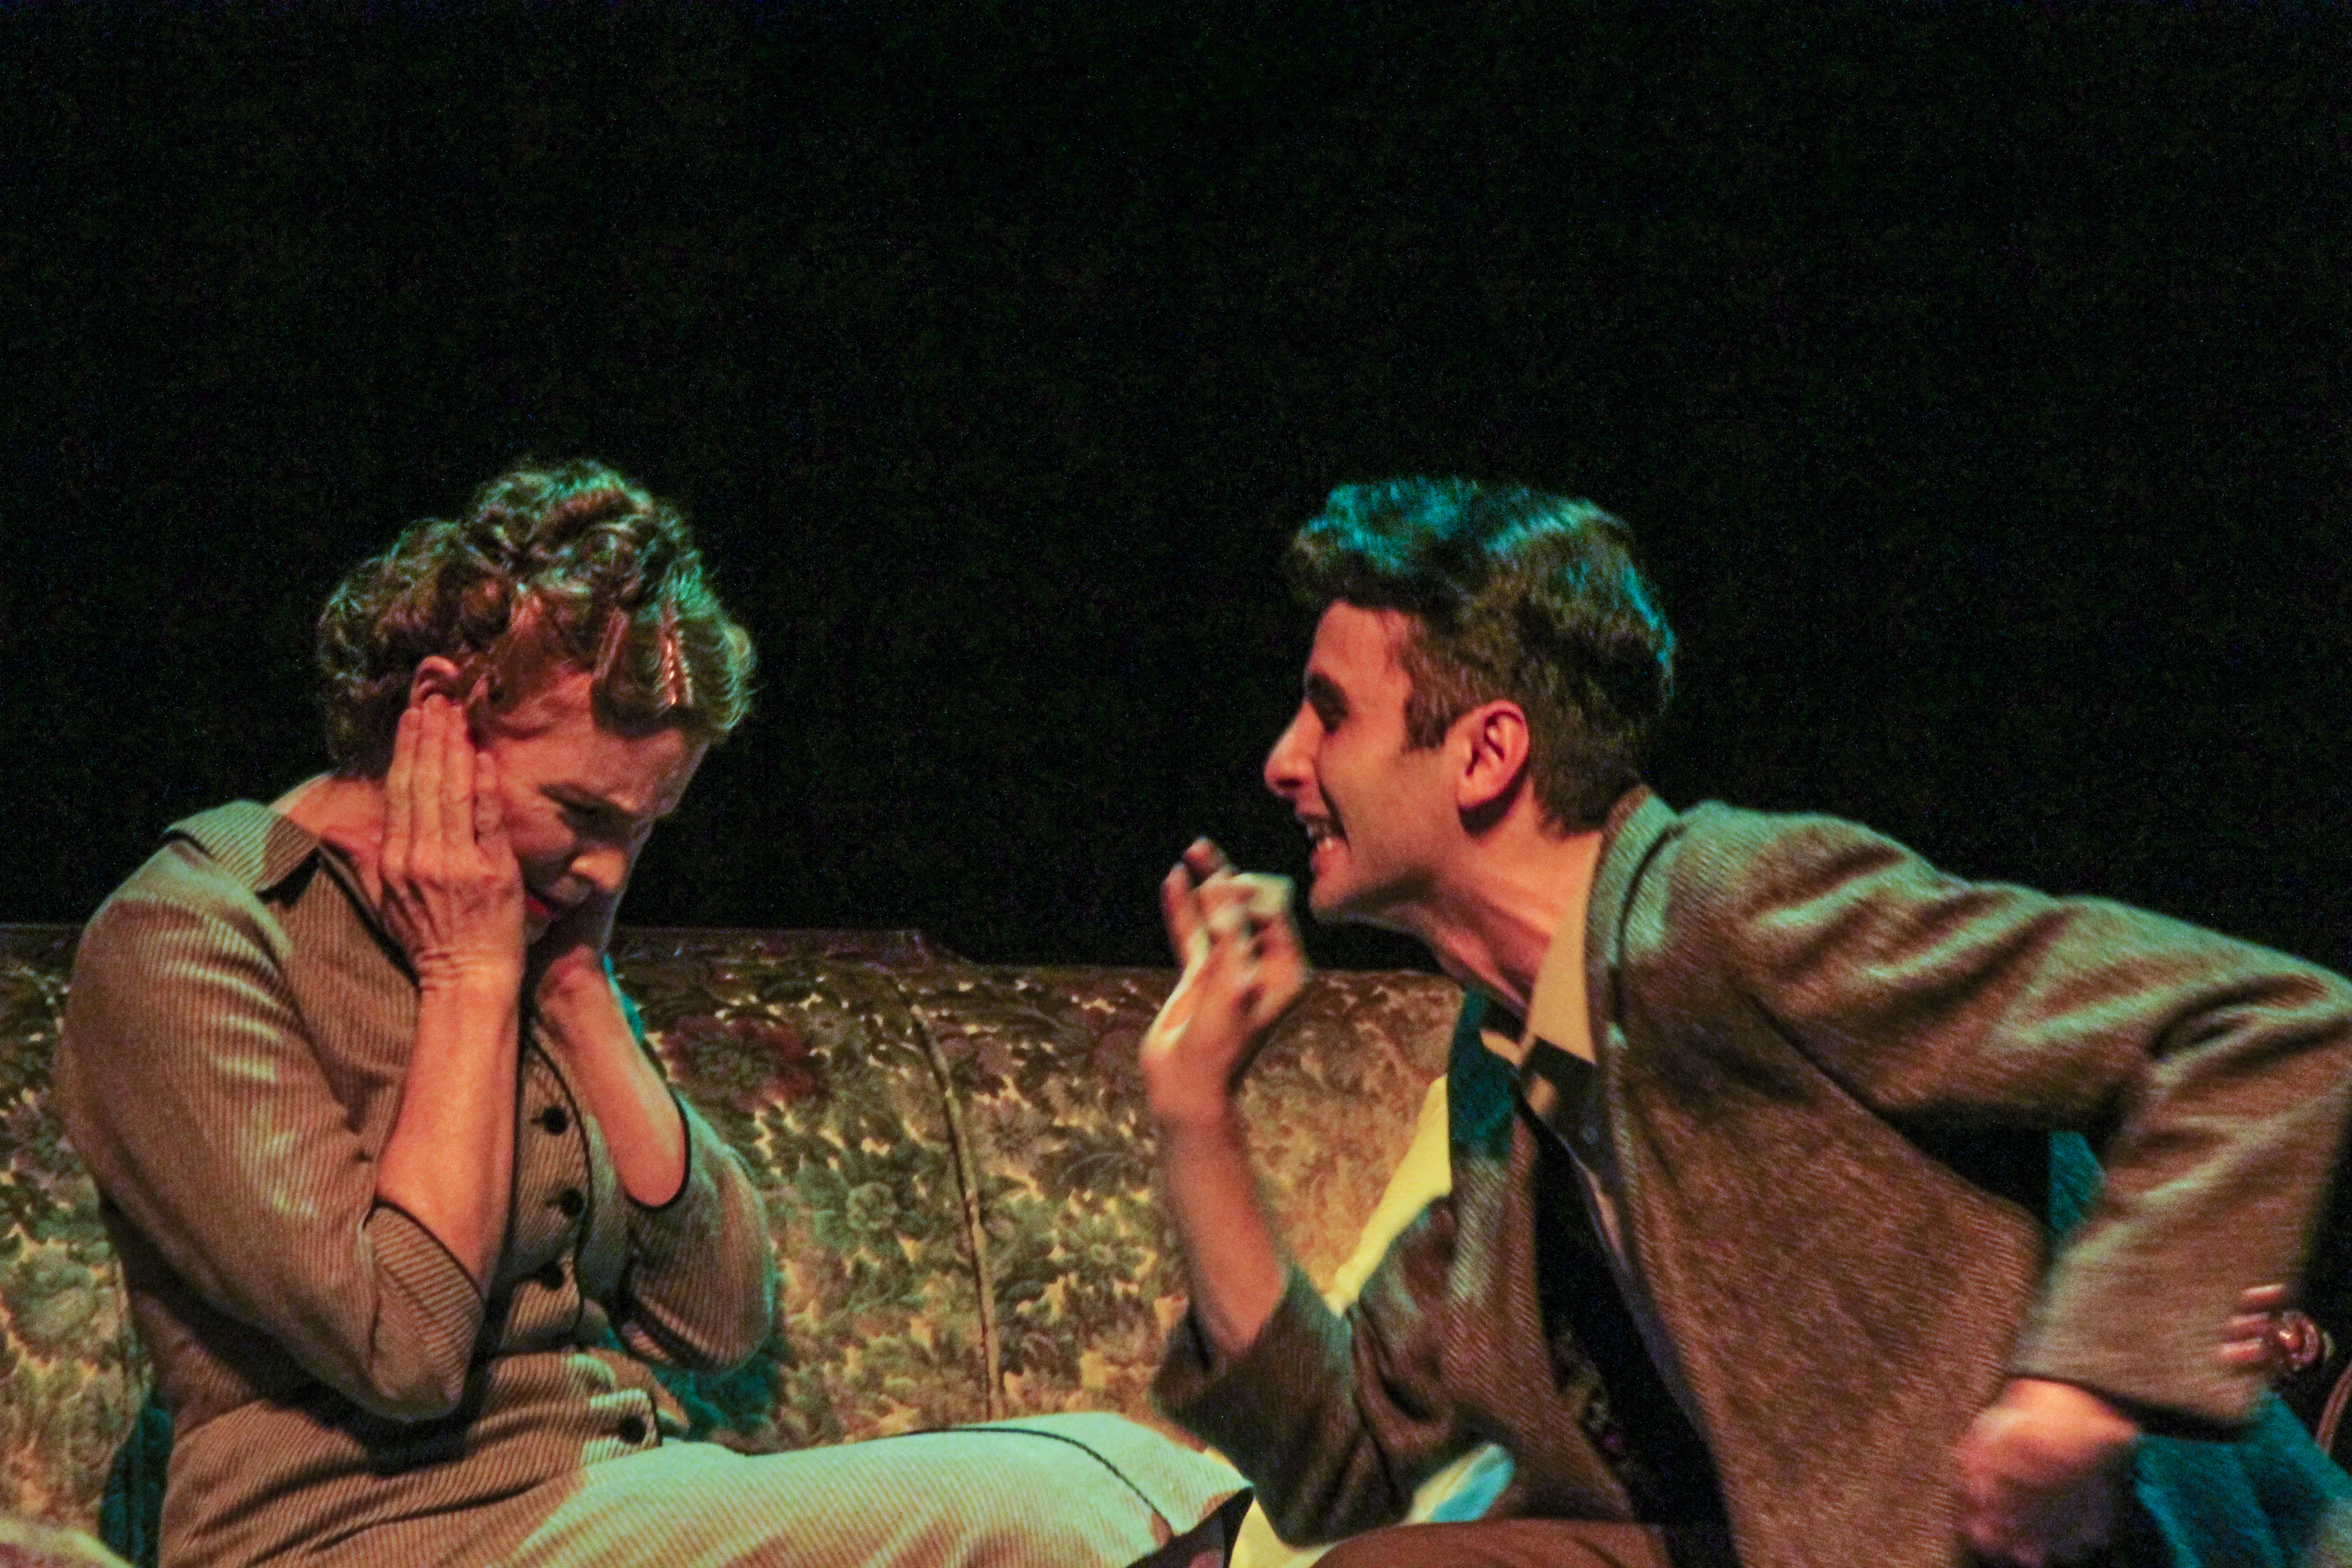 Tom (right, peformed by Sean LaRocca) antagonizes his mother Amanda (left, performed by Heidi Bridges) after she nags him about his drinking during the dress rehearsal of The Glass Menagerie being performed at Palomar College. Lucas Spenser/Telescope.